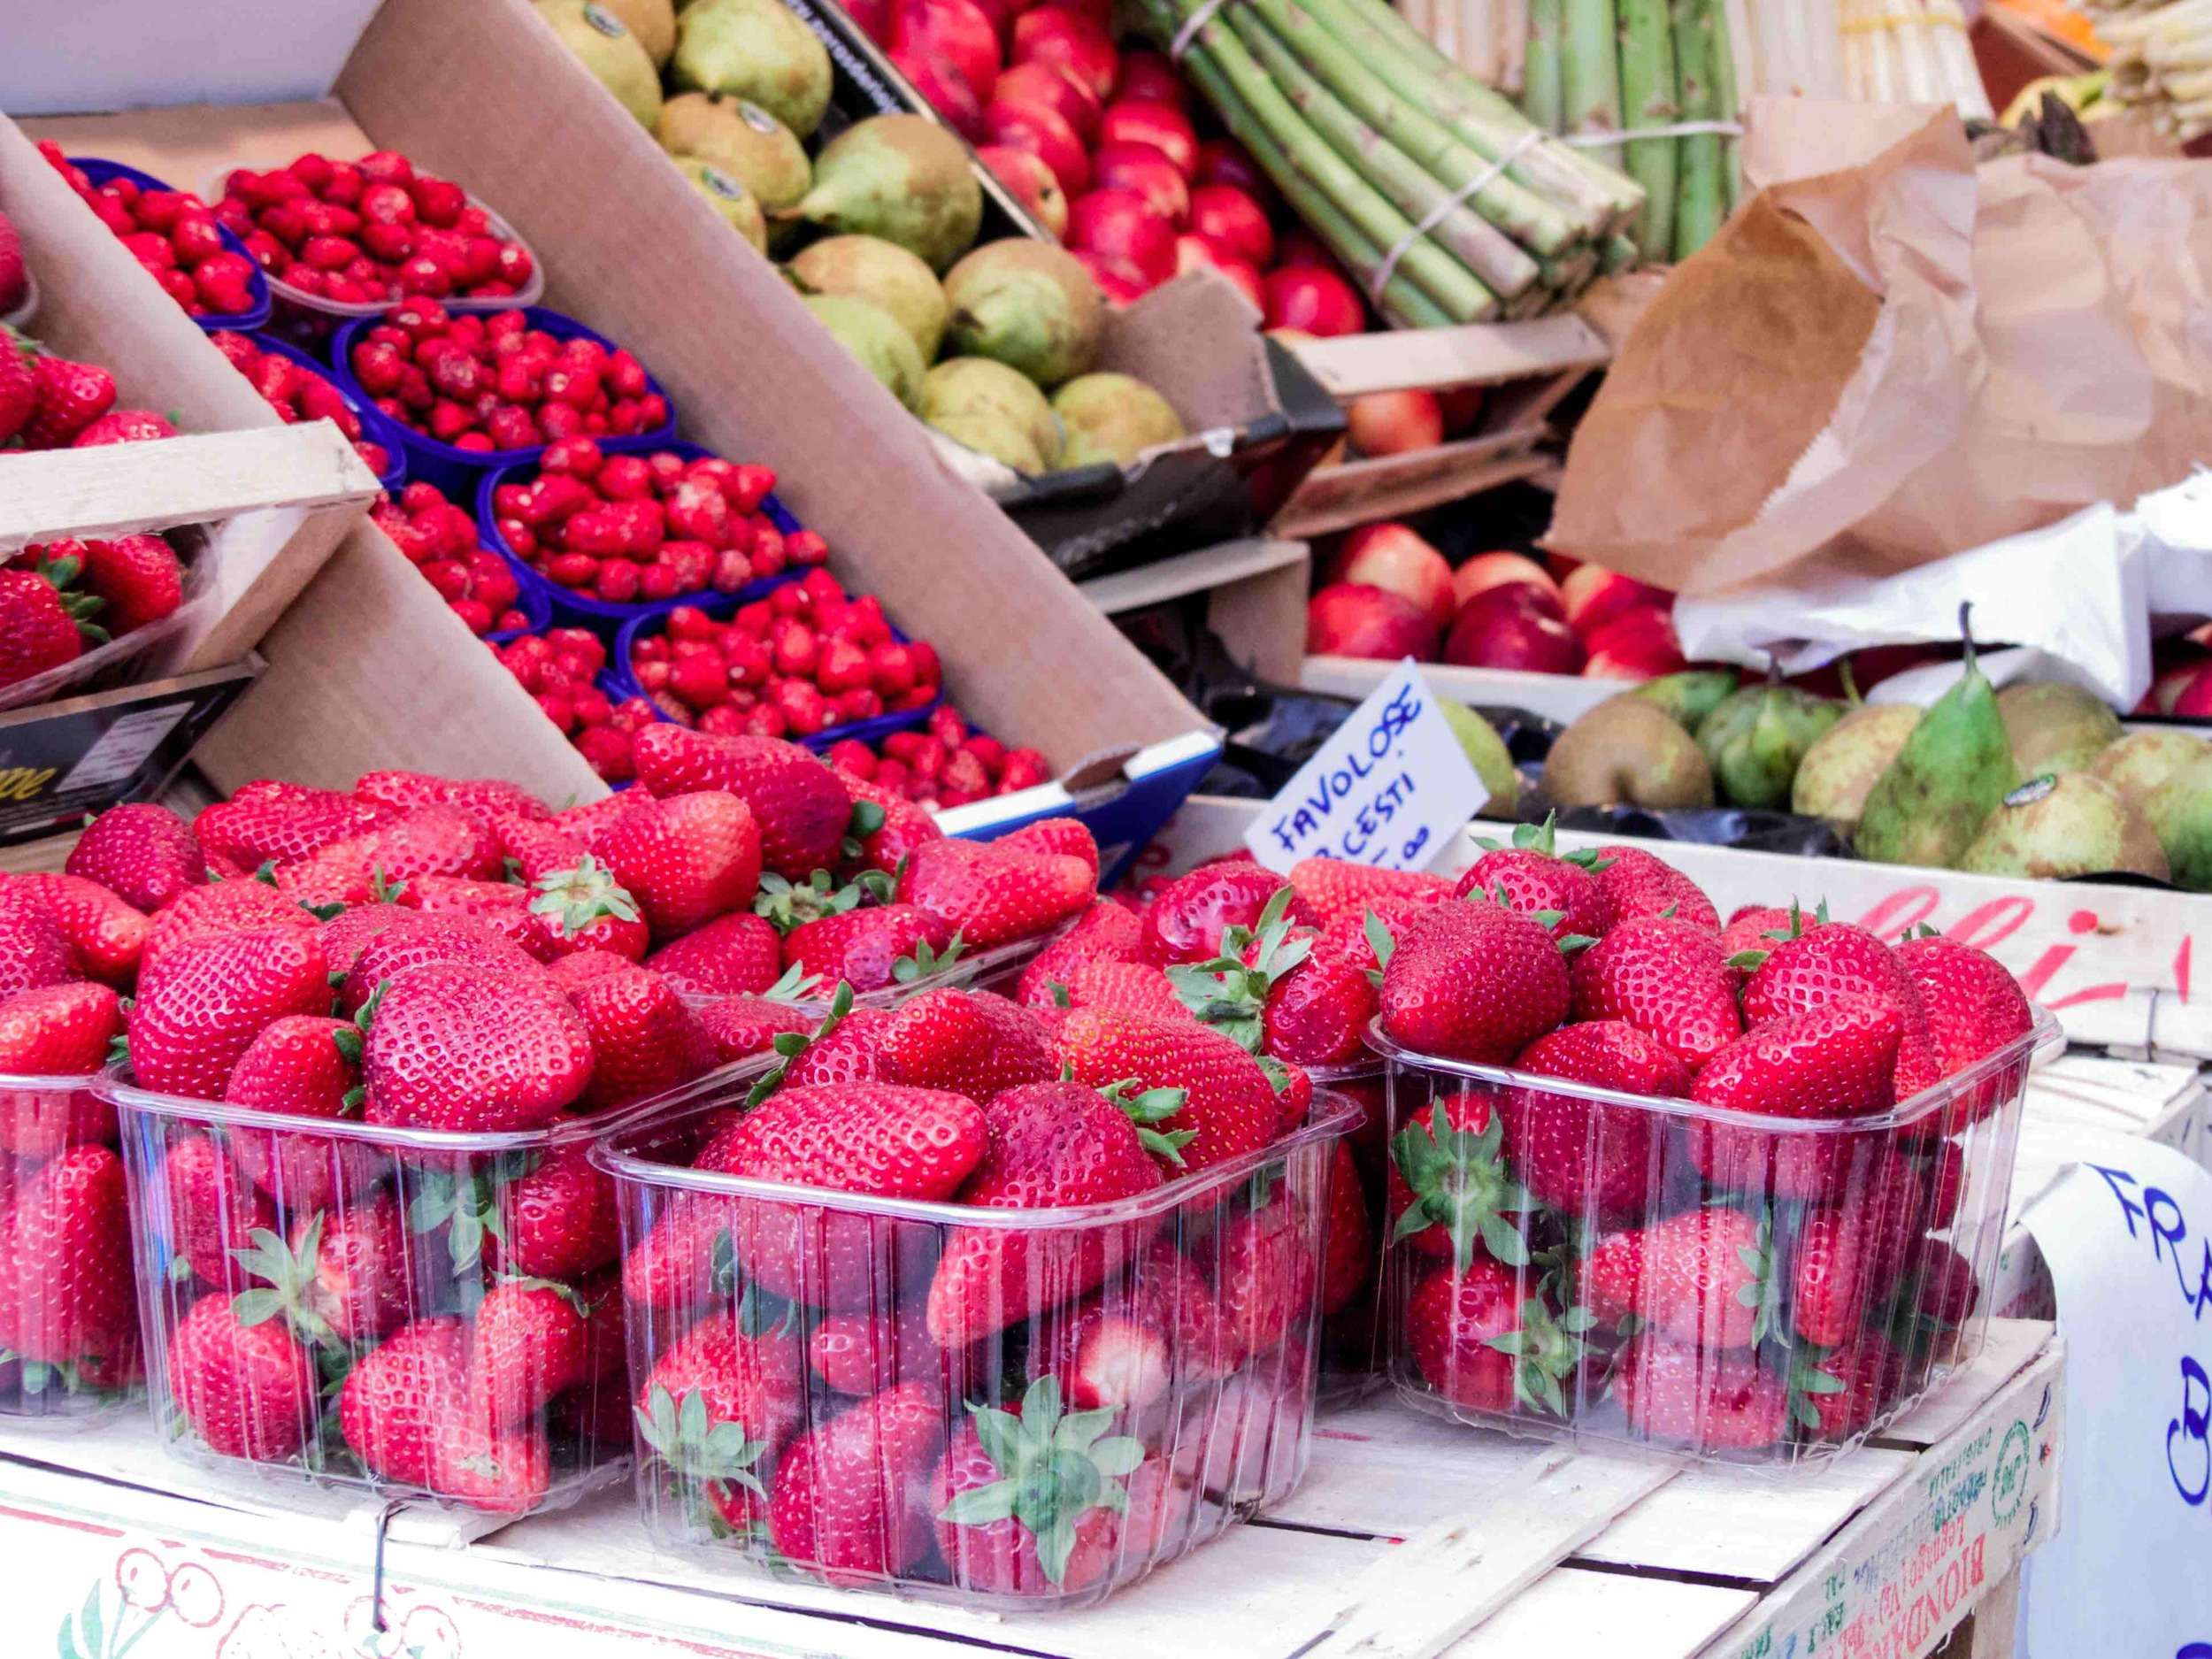 Yes, strawberry is in season. They tasteas good as theylook.